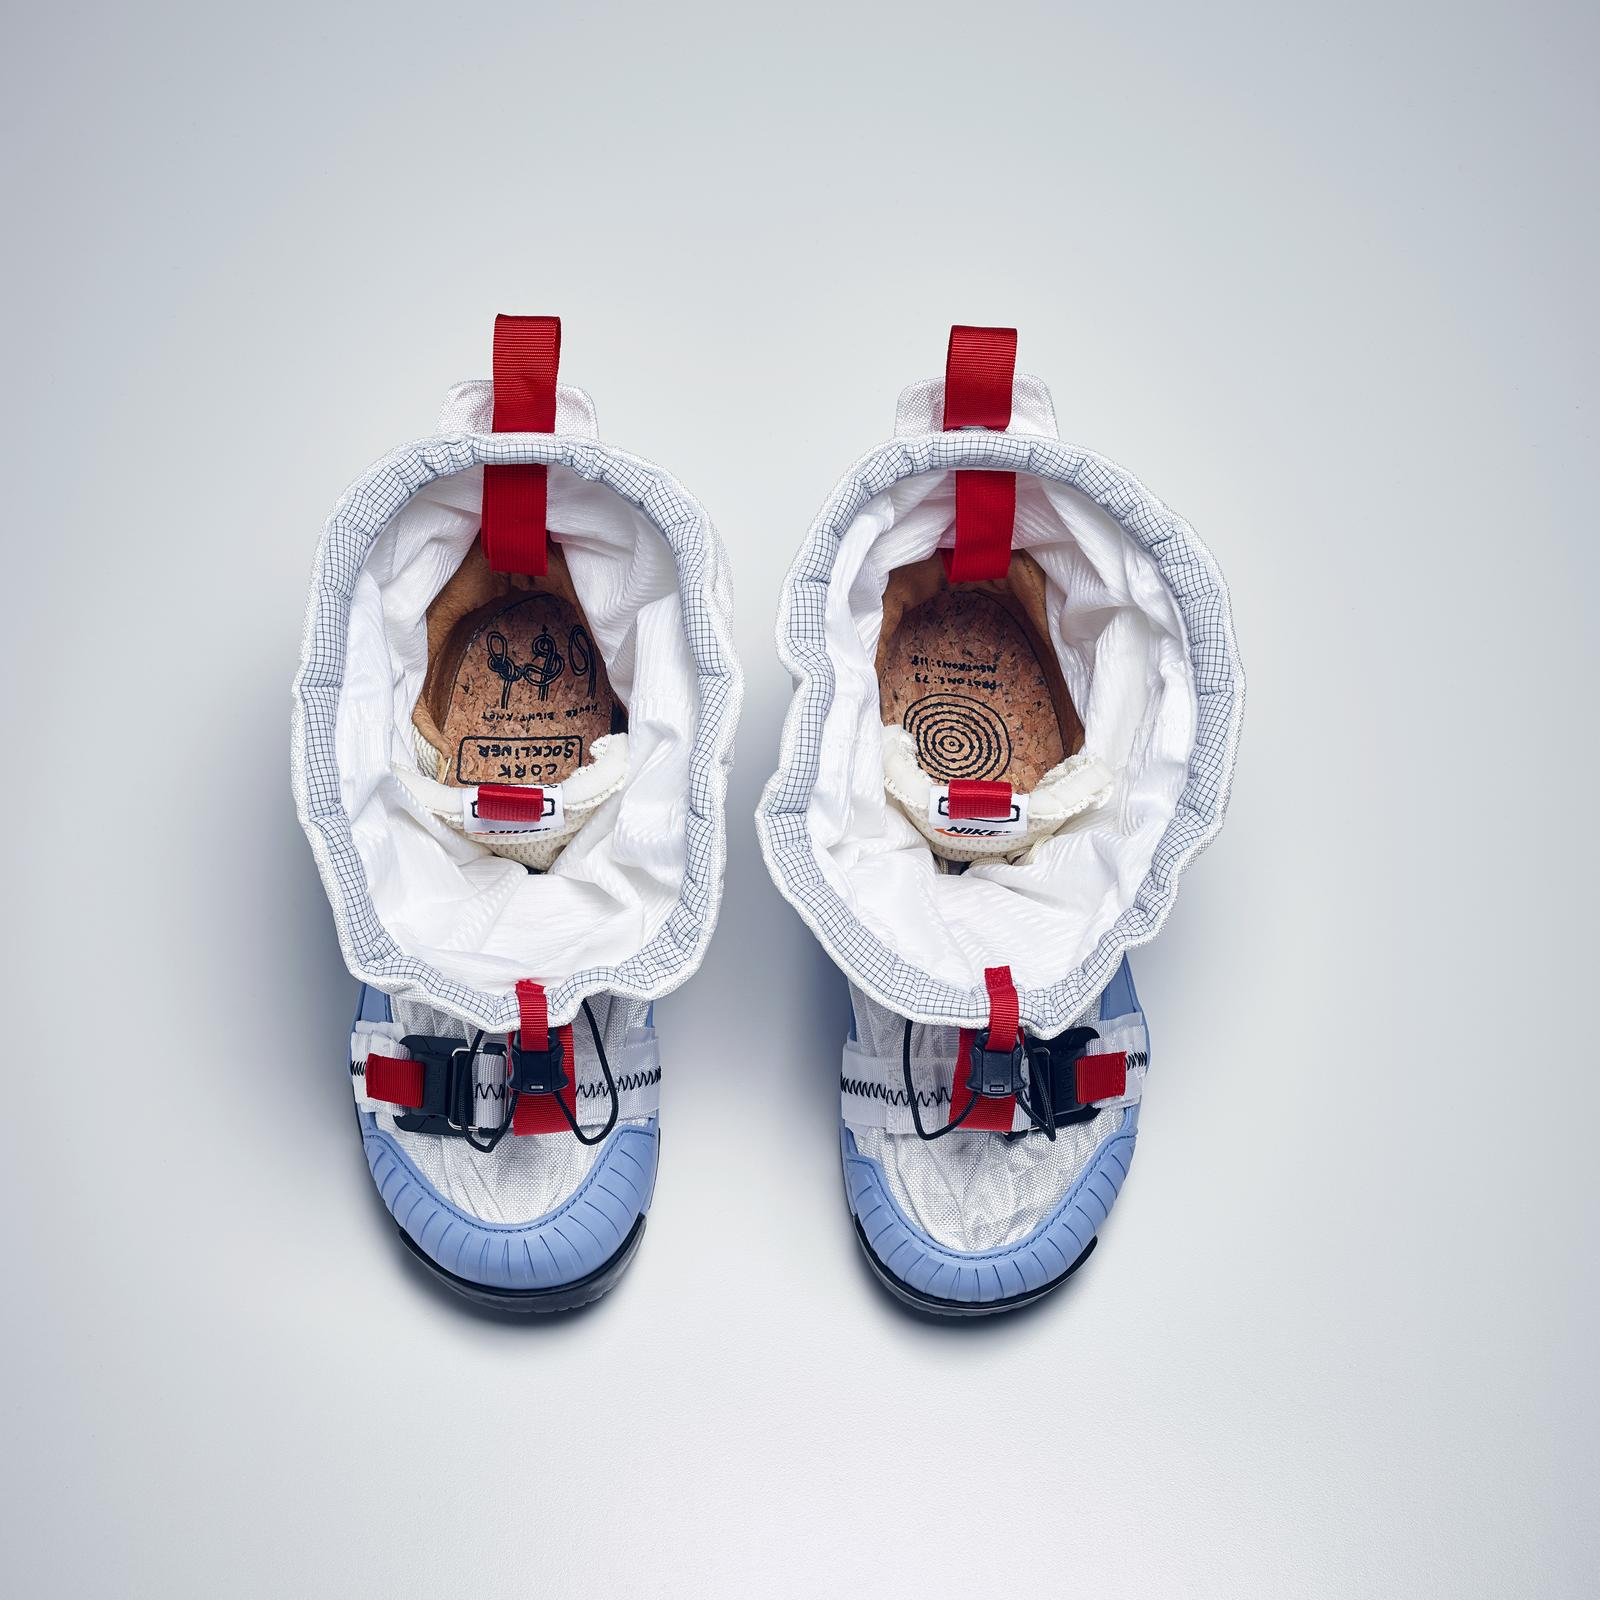 How Tom Sachs' Impromptu Work as Wear-Tester Birthed a Whole New Shoe (Or: The Virtues of a Freakout) 5